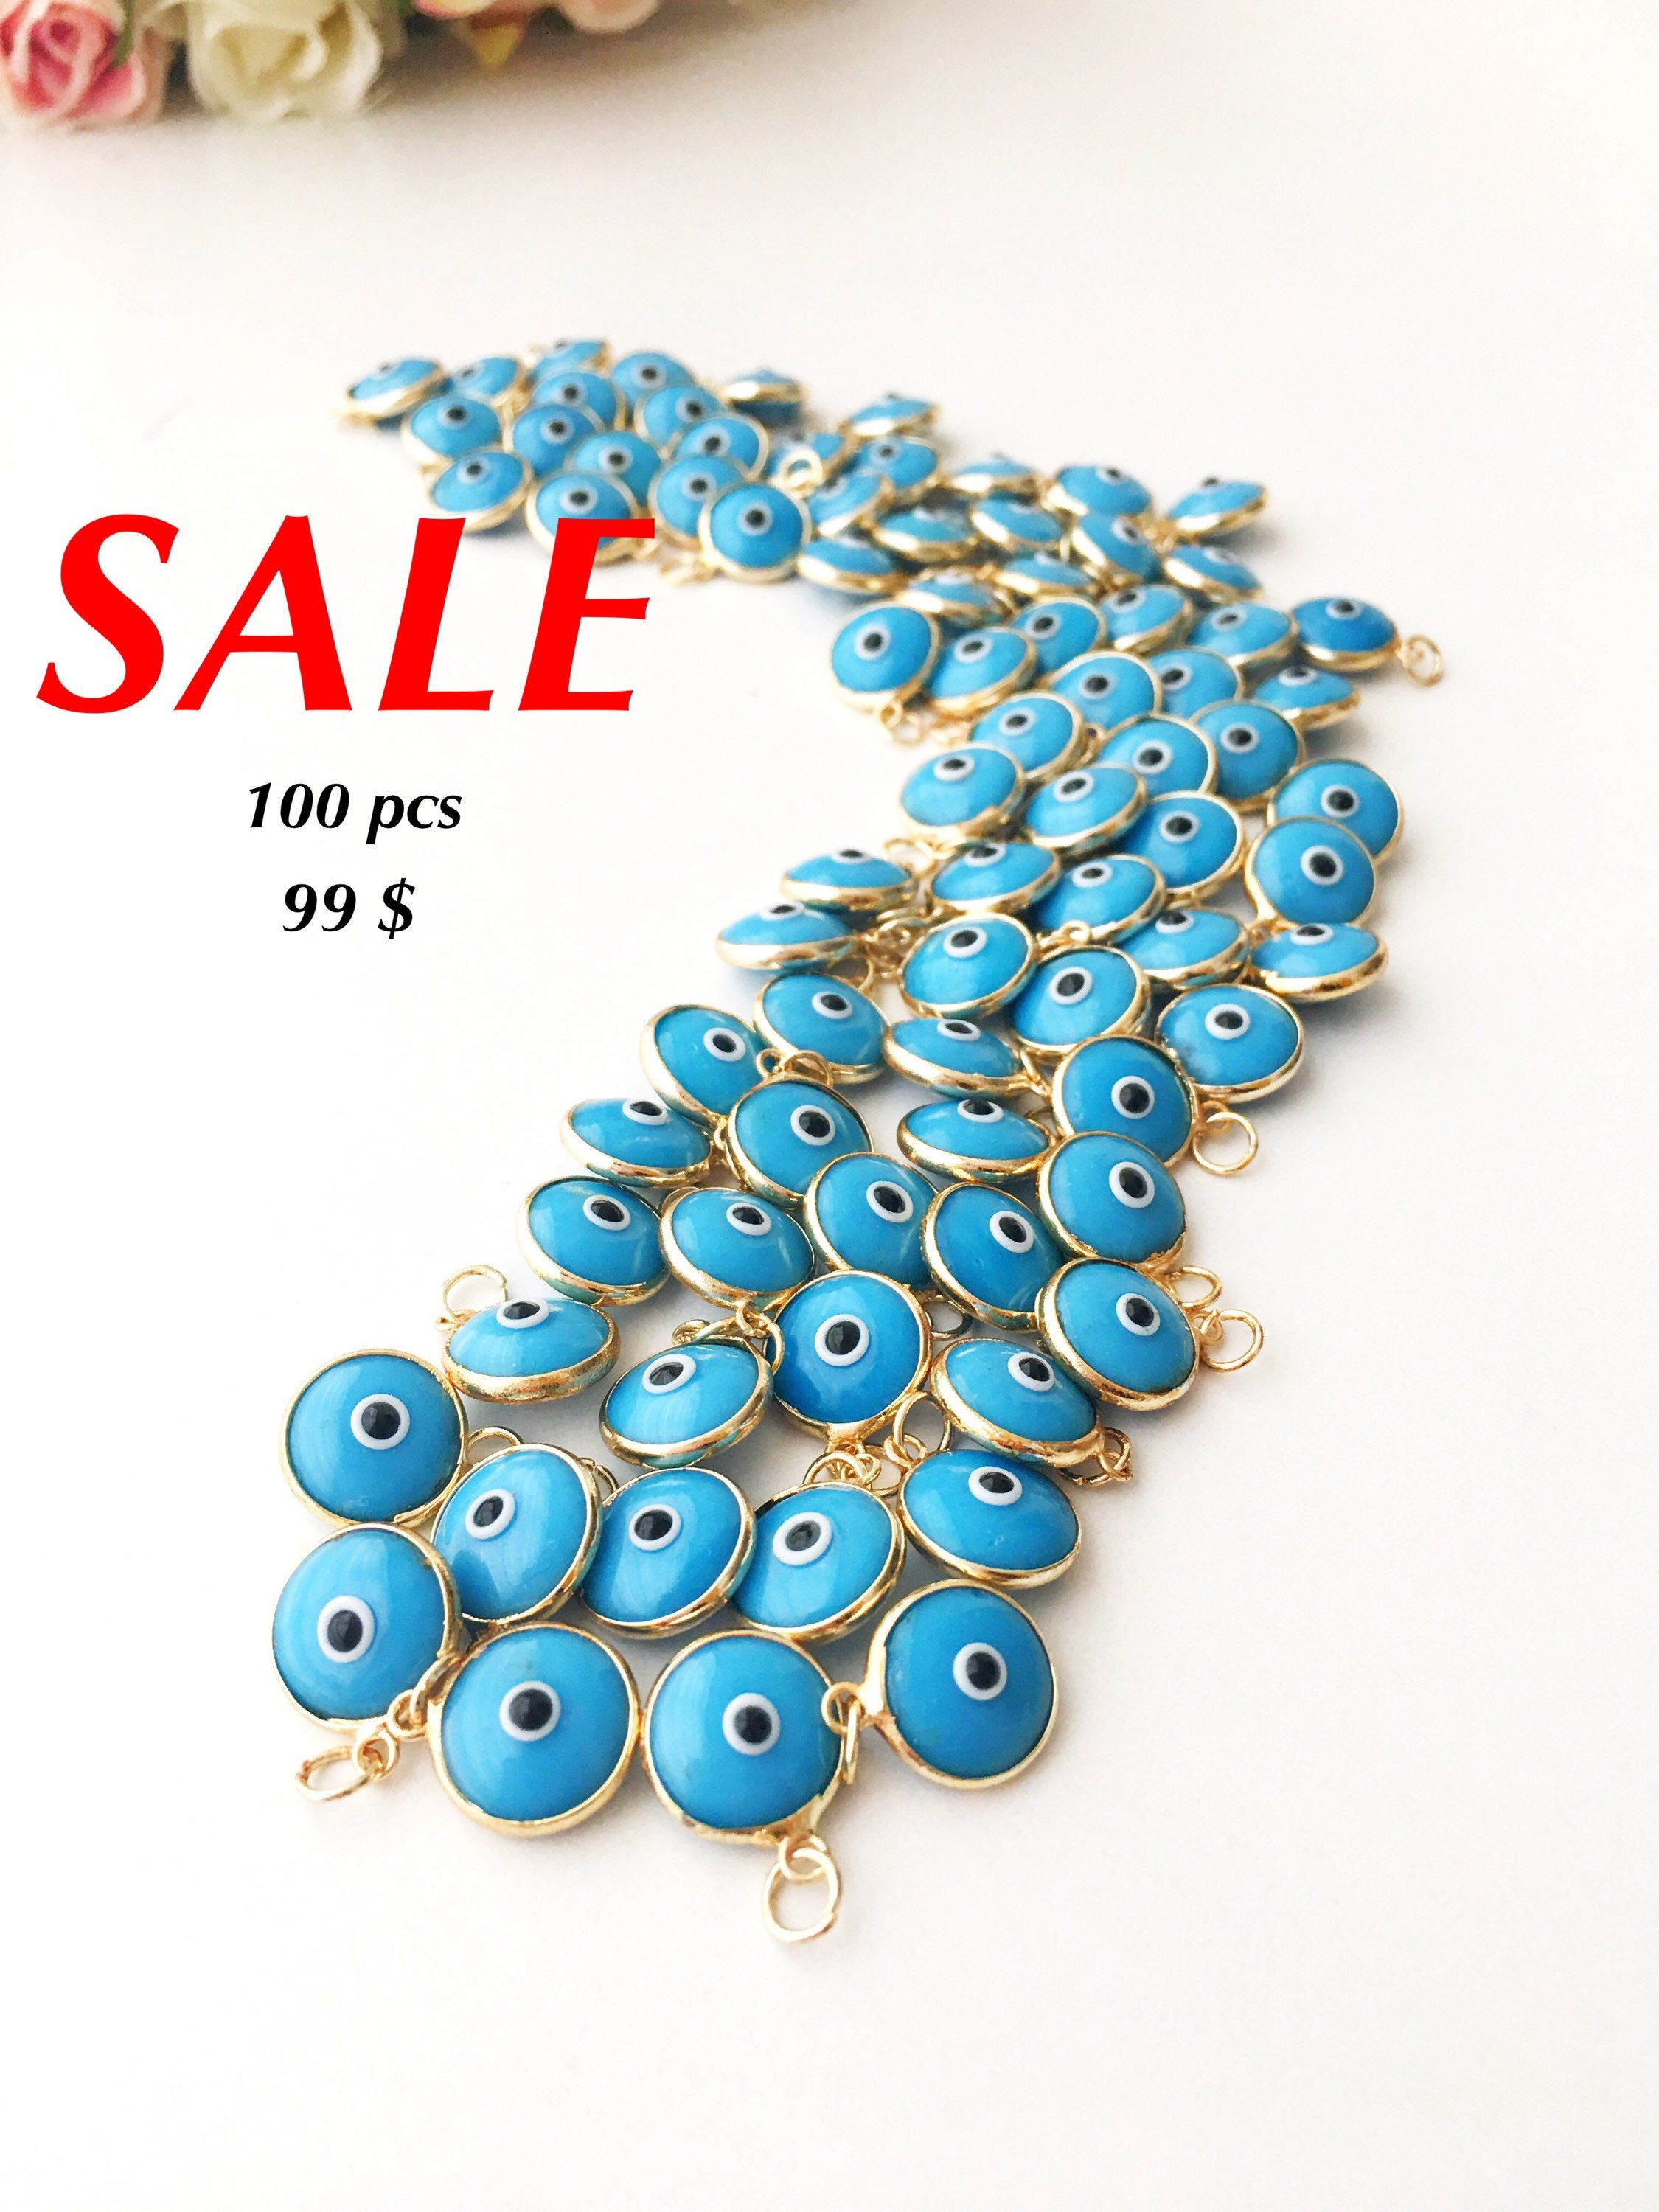 looking beads silk christy earing undertaken for in bulk sattur noticeboard resellers thread carolin order connect with sale